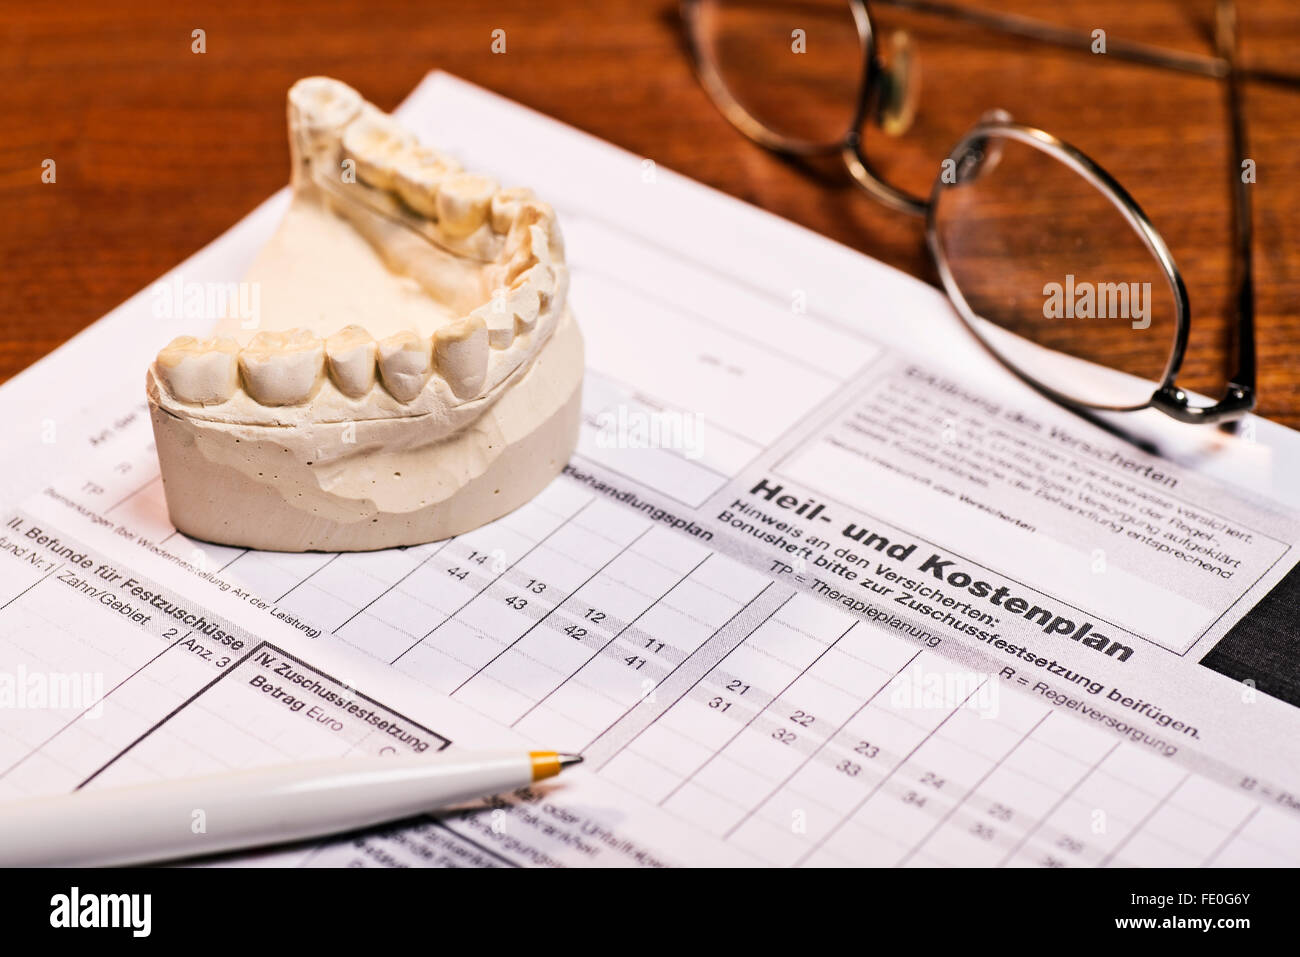 Curative costing plan for dental prostheses - Stock Image